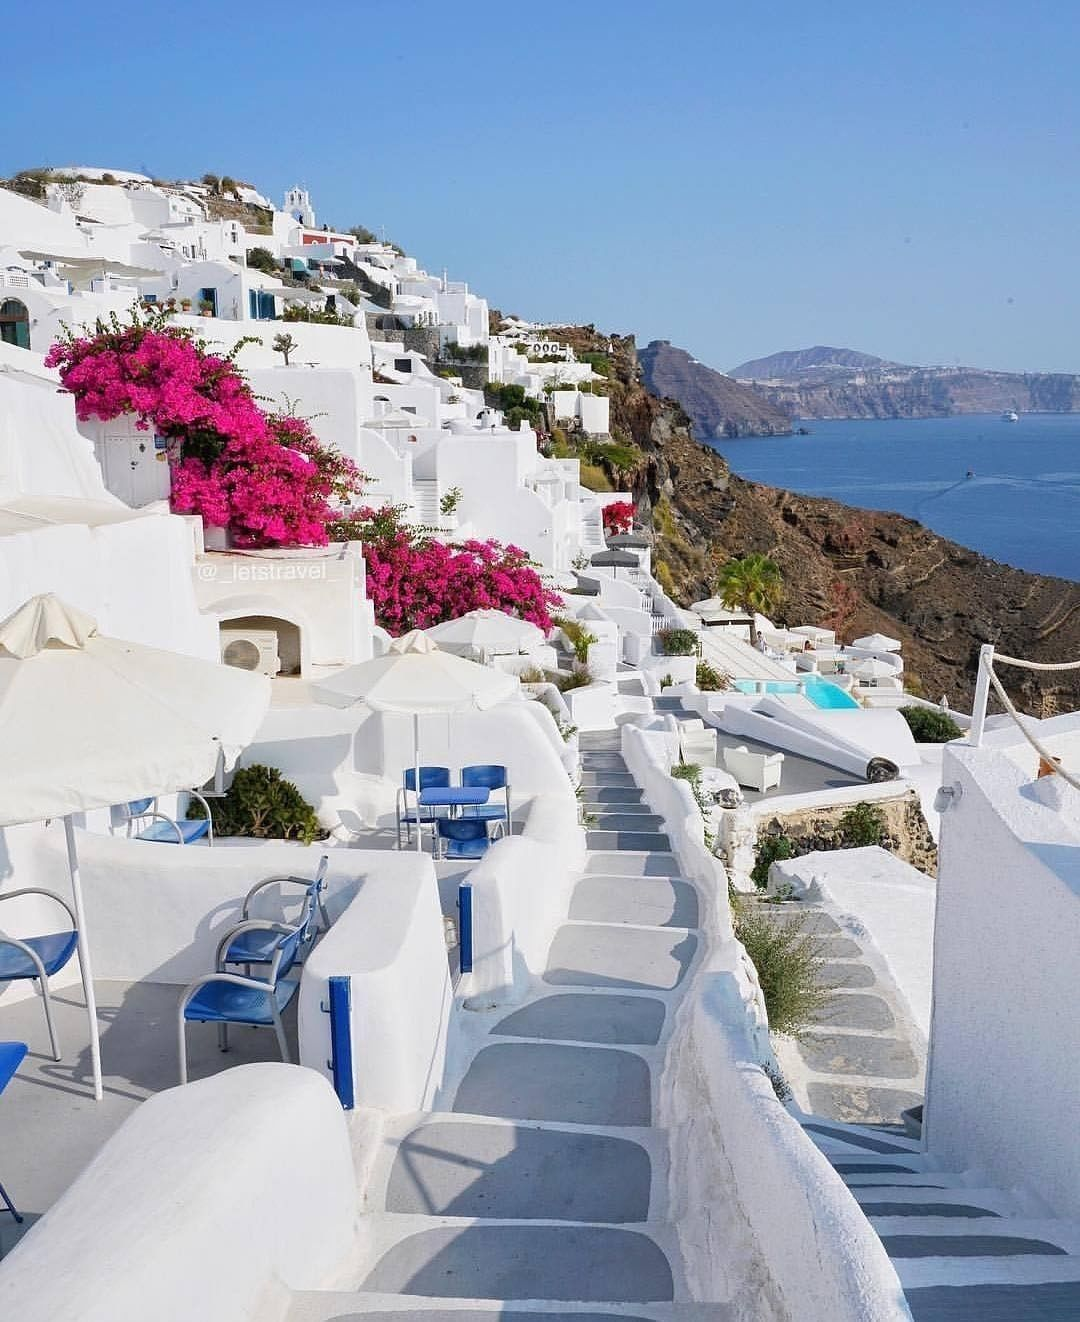 Pin By Luxyhijab On Places To Visit Santorini جزيرة سانتوريني Dream Vacations Destinations Places To Go Santorini